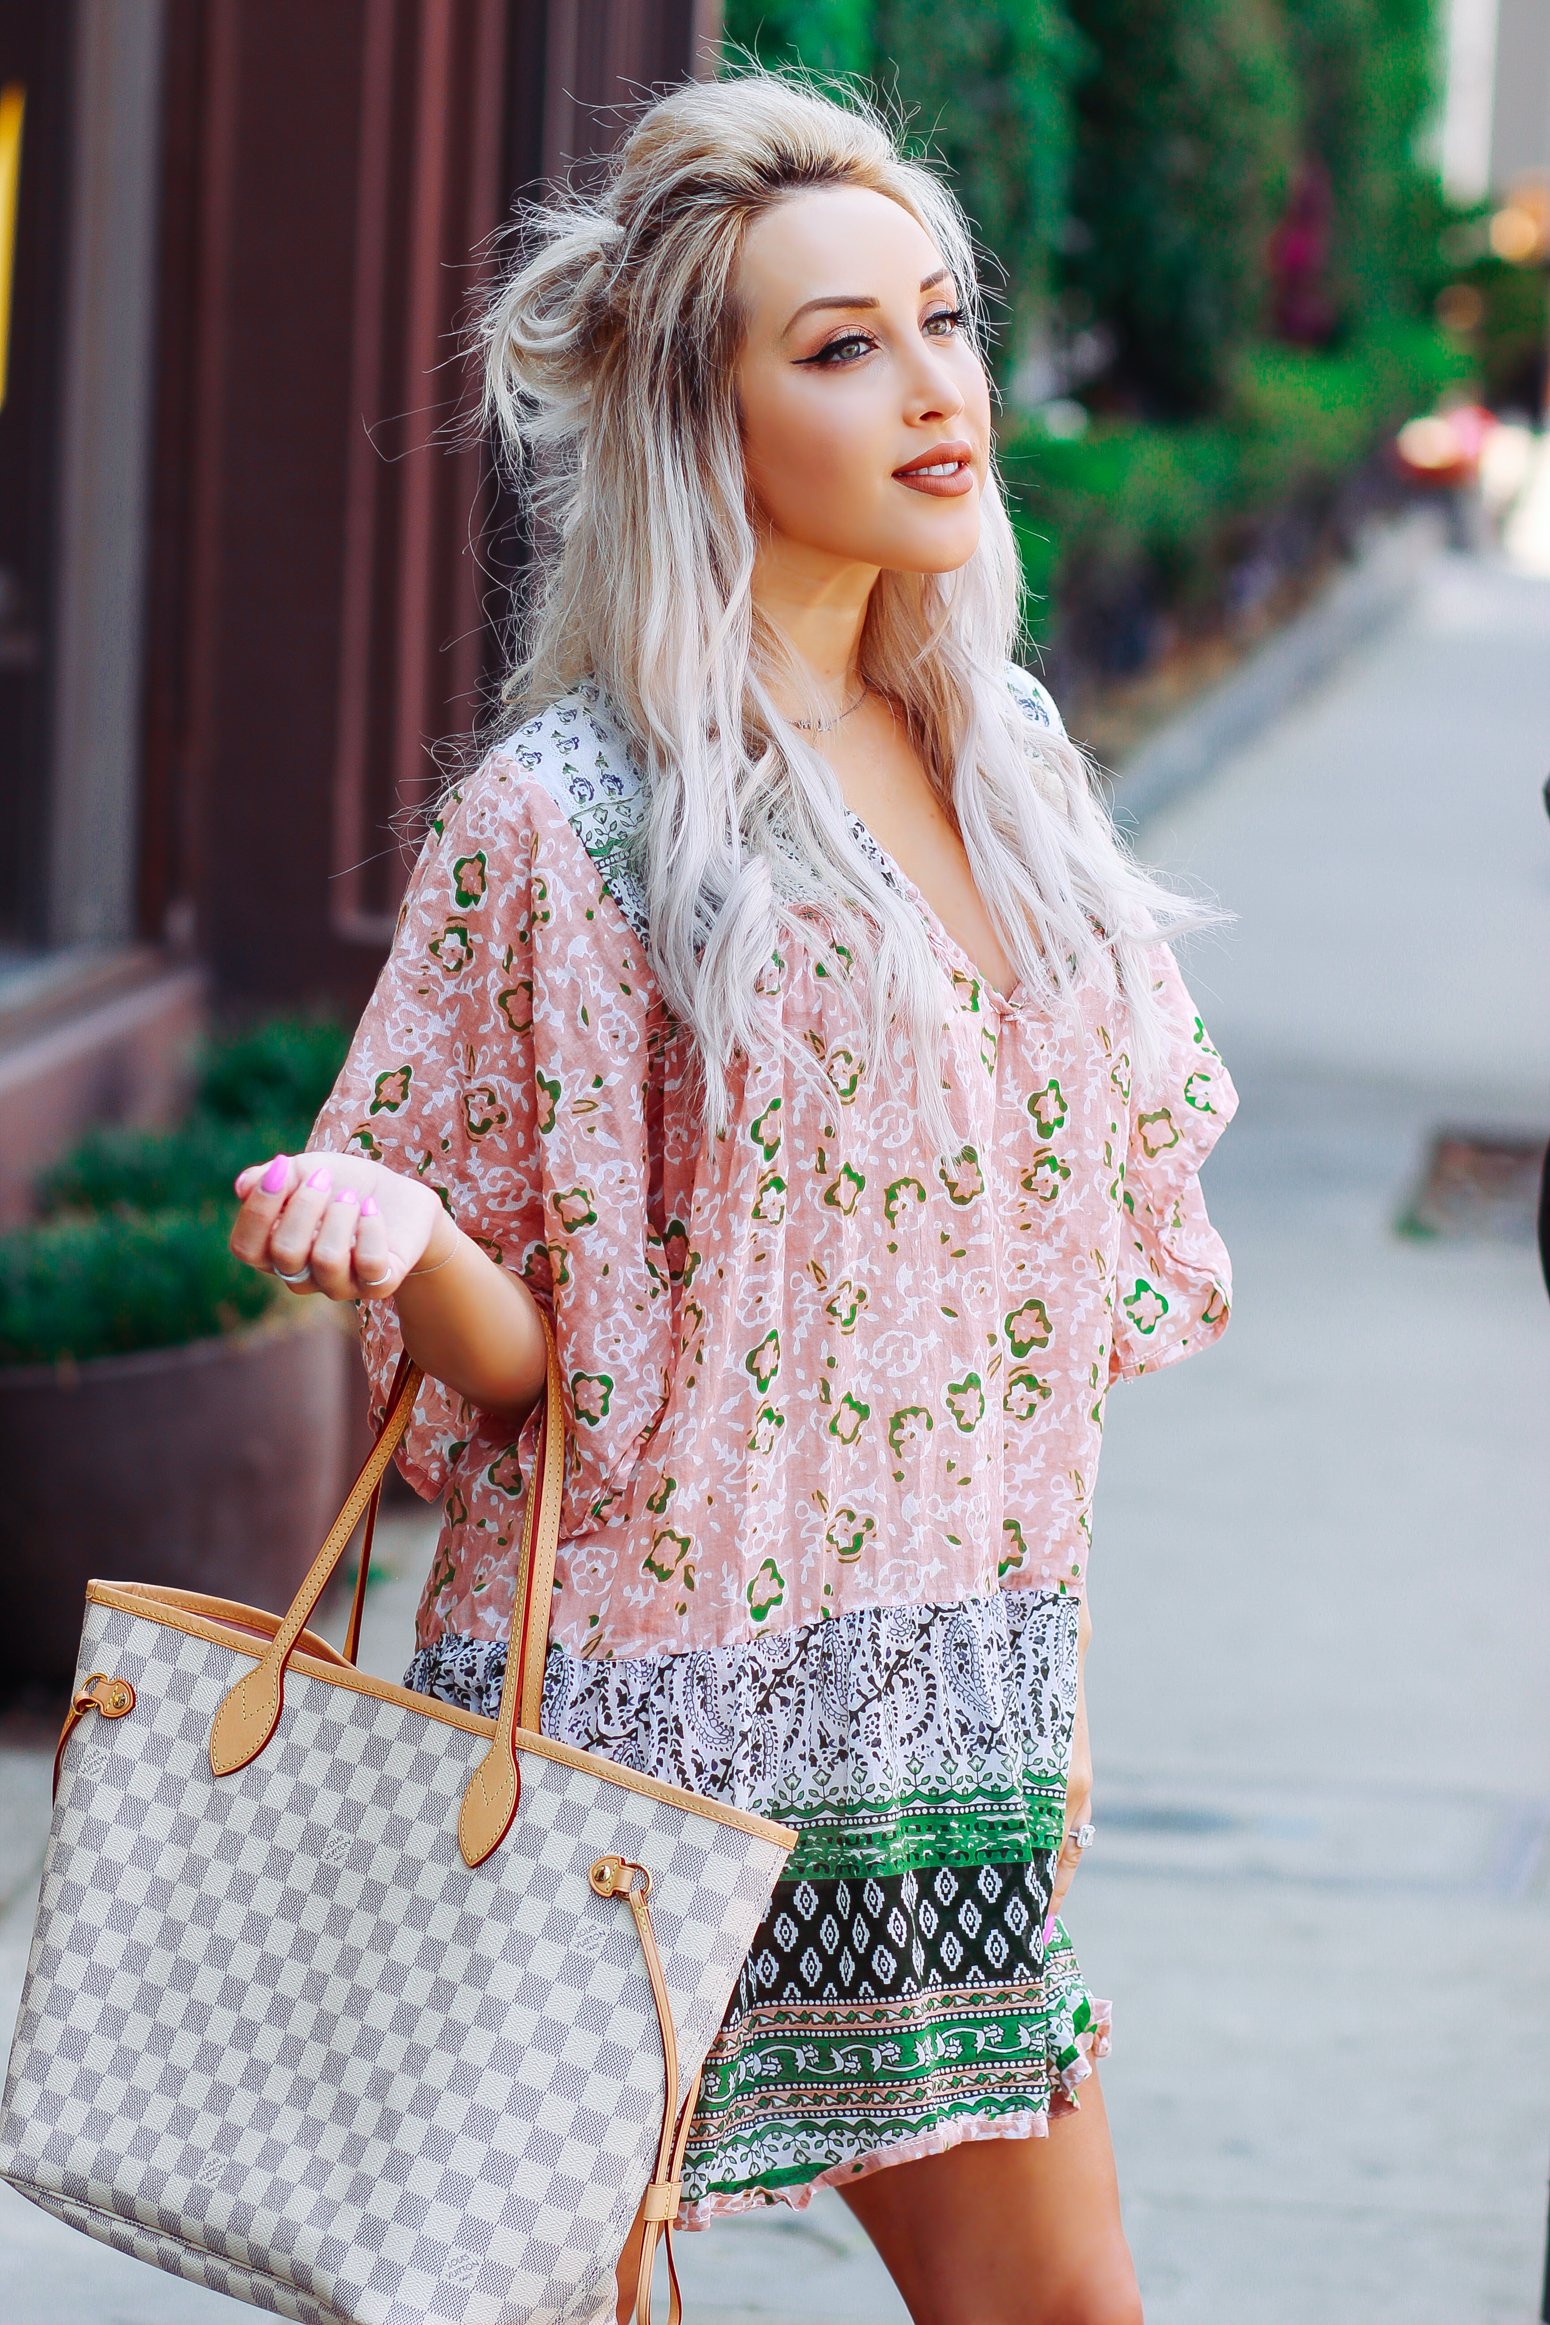 Blondie in the City | Boho Style Dress @LavishGOLD